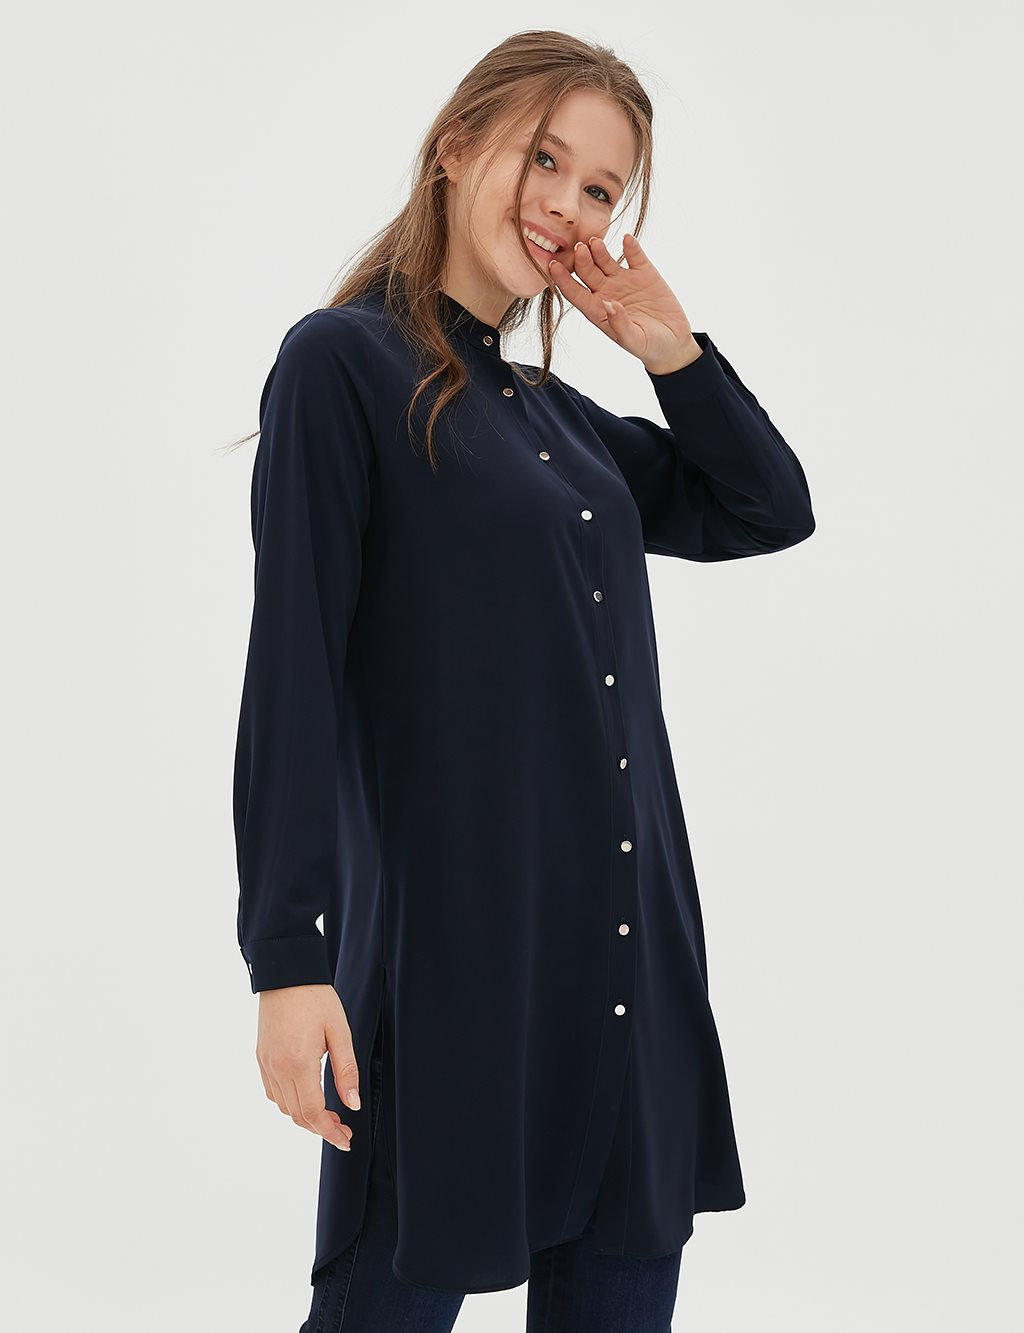 Tunic With Button SZ 21505 Navy